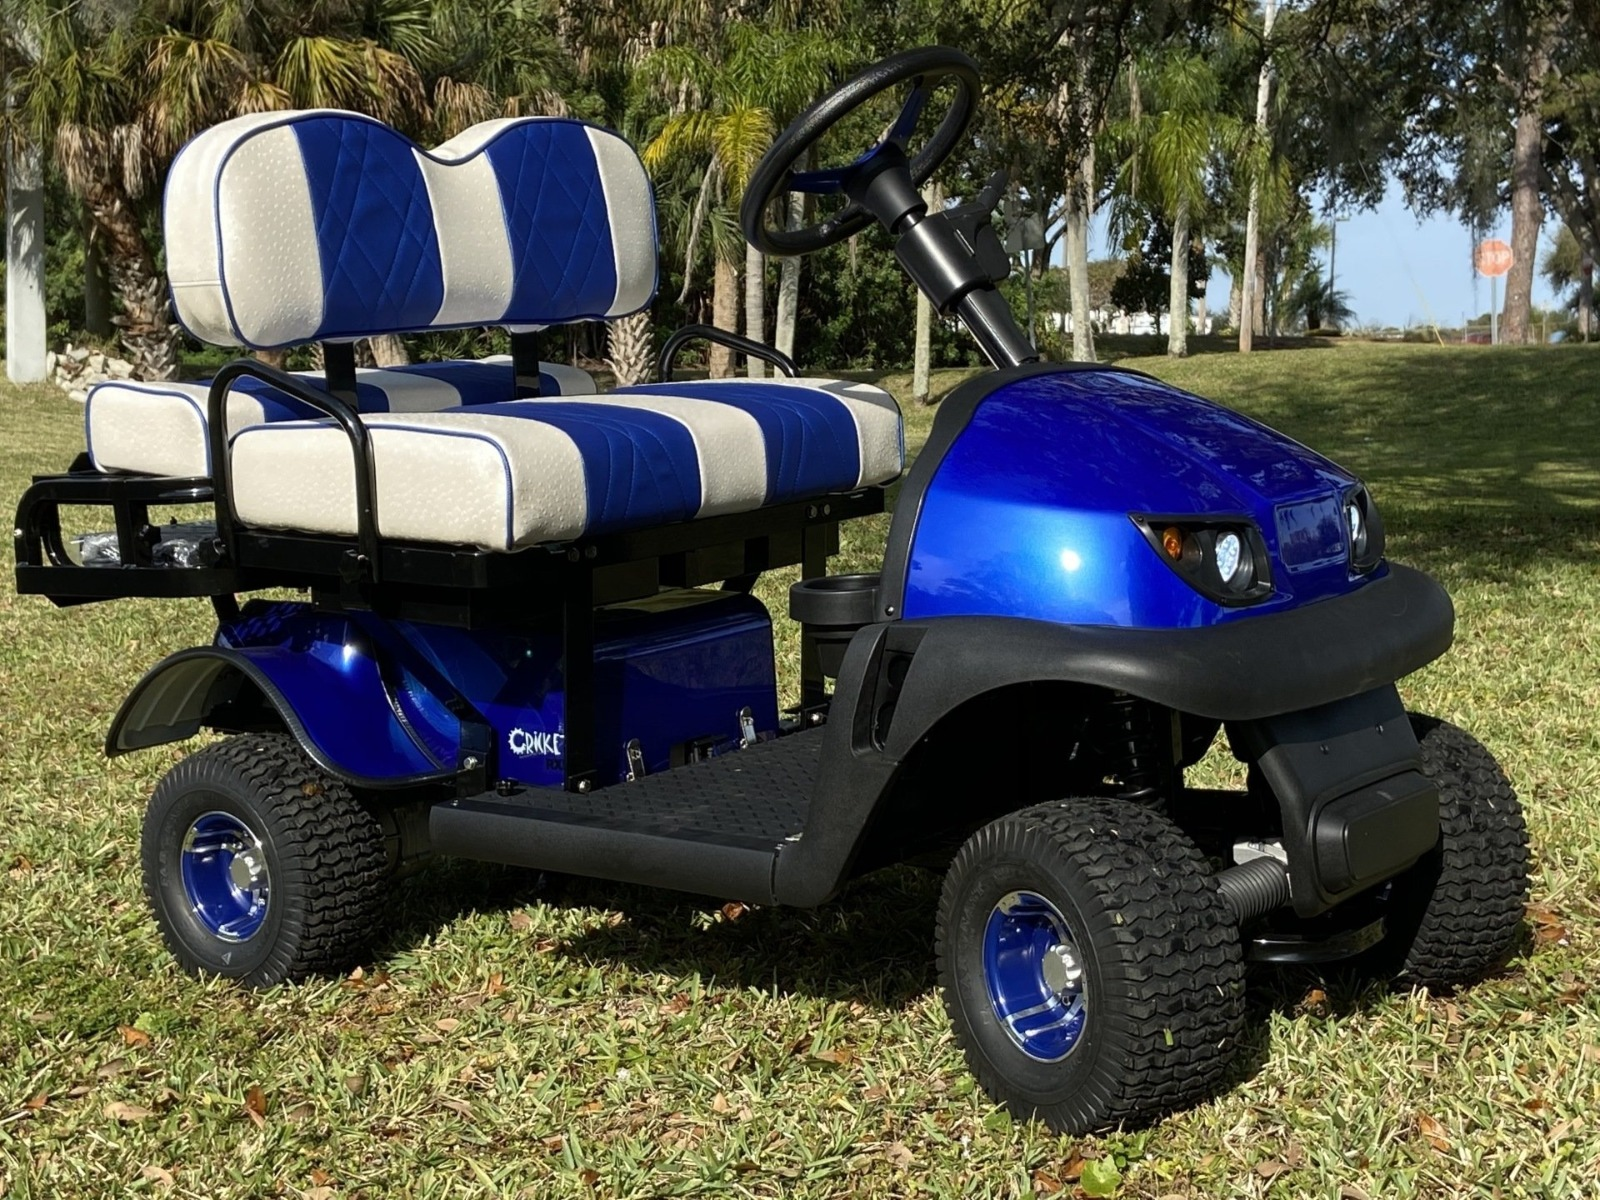 cricket RX-5 mini mobility golf carts for sale in florida